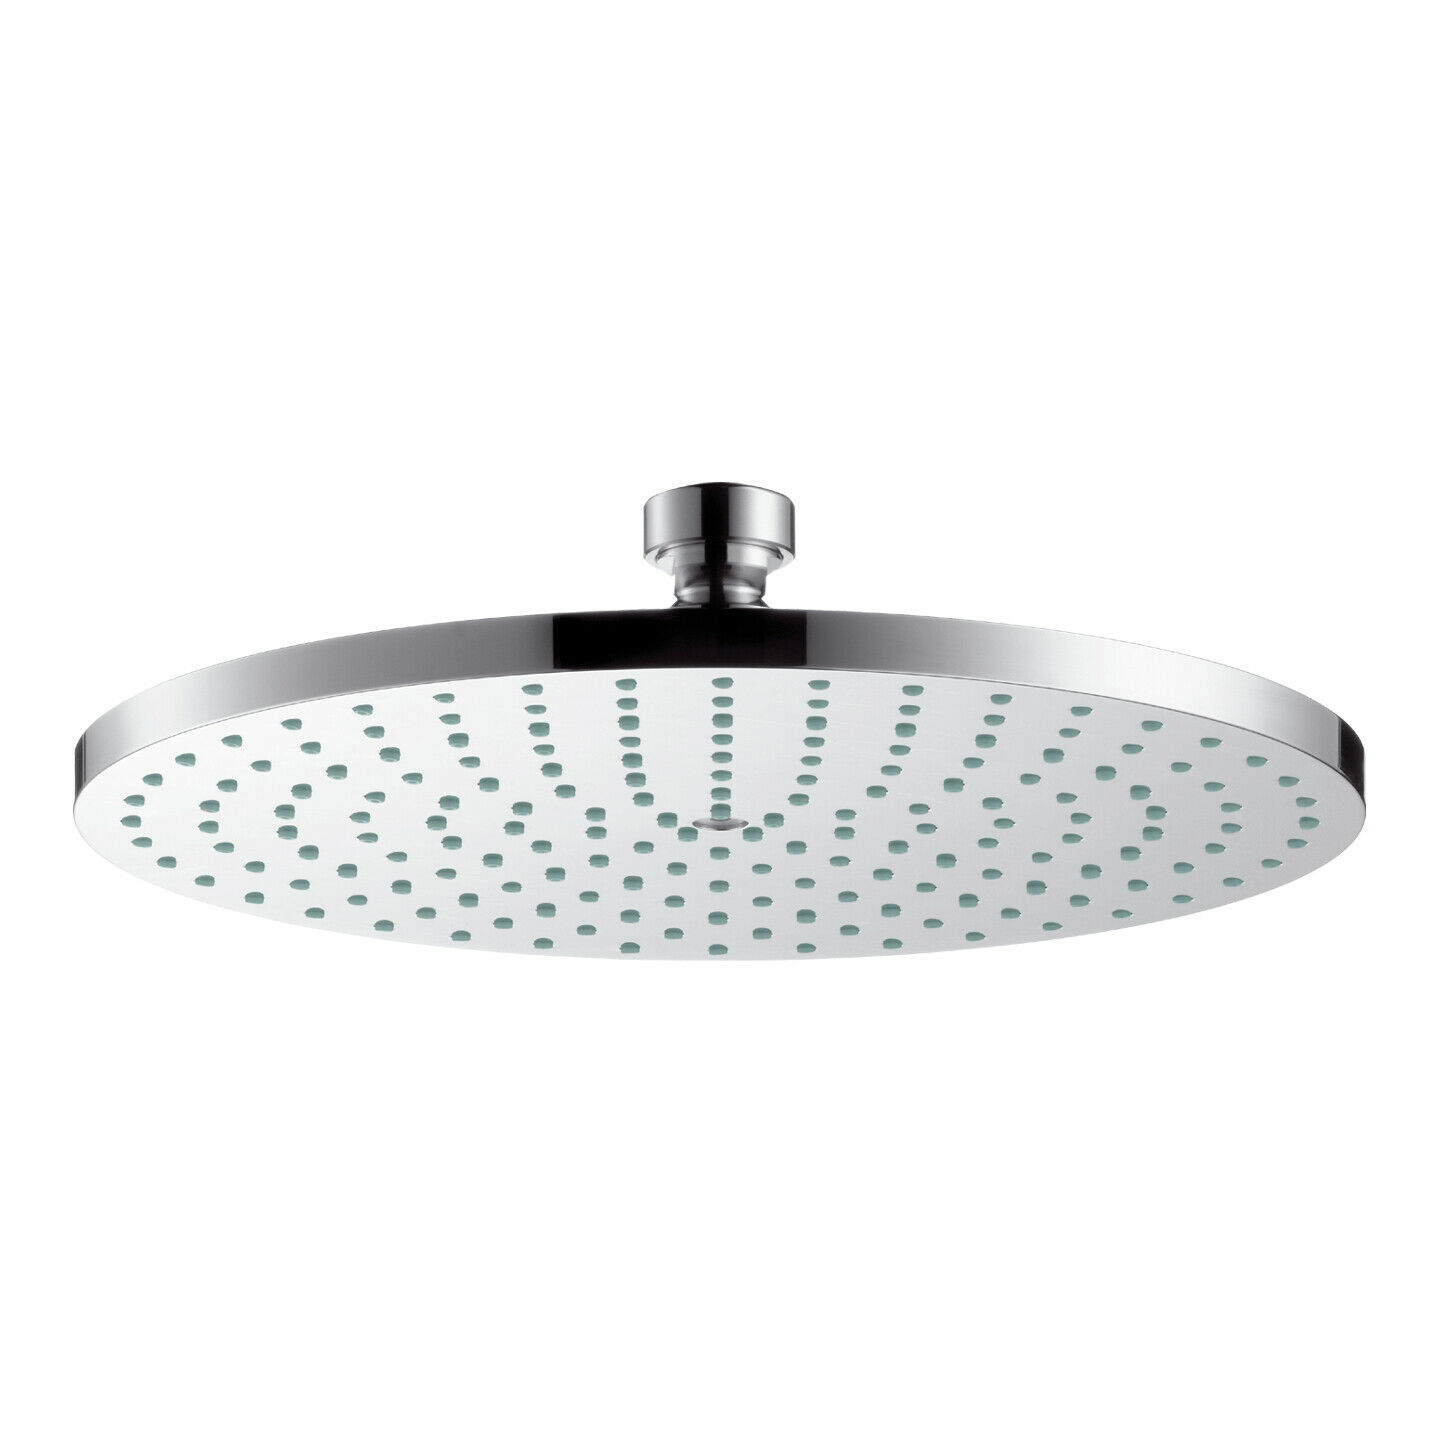 Hansgrohe Dish Shower Head Axor 240 Mm Chrome 28494000